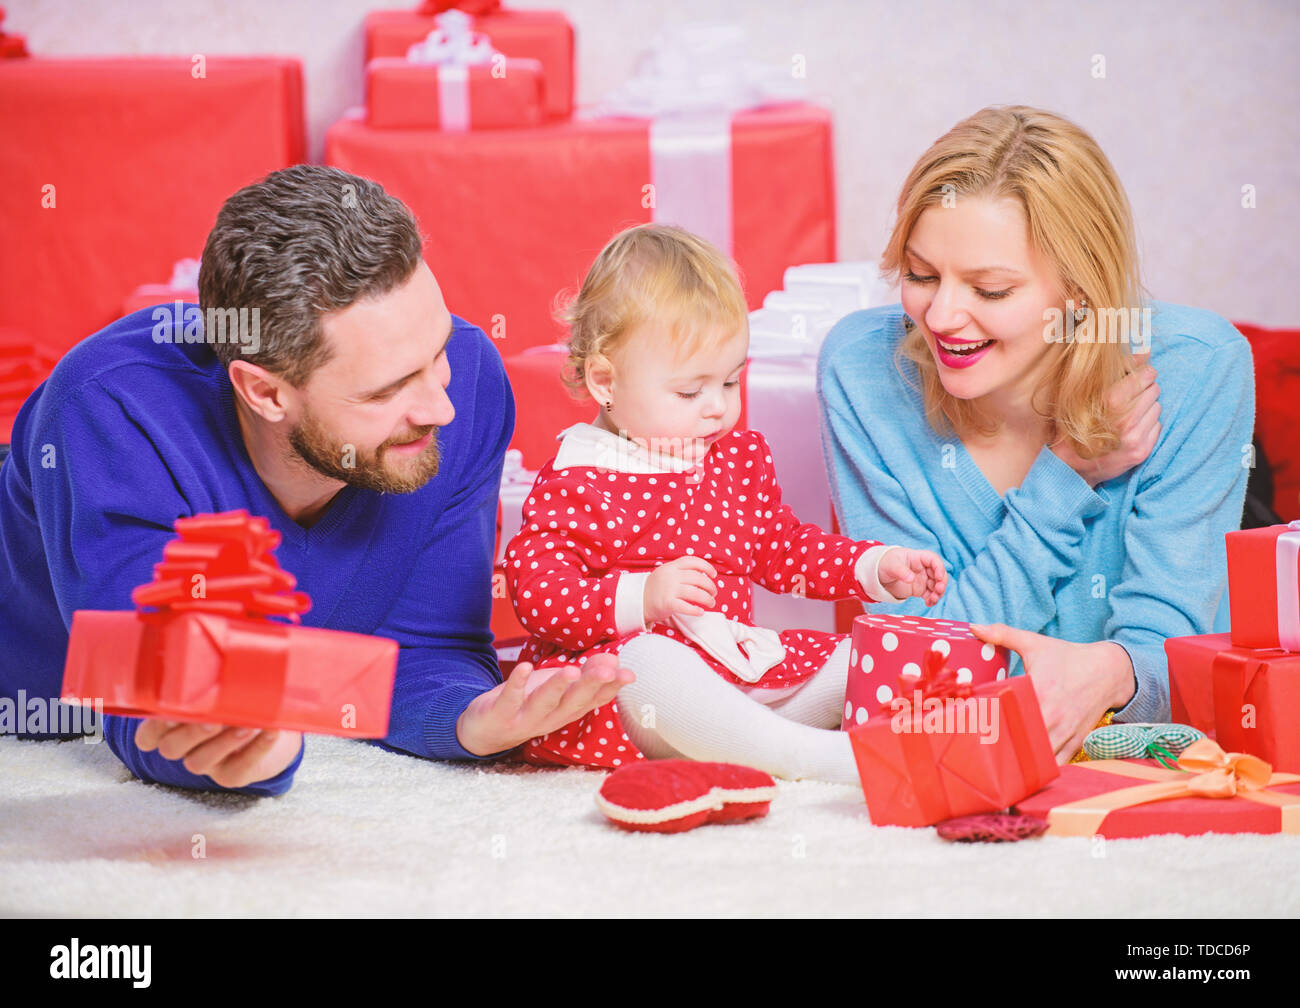 Couple in love and baby are happy family. Celebrating something special. Traditional family values. Family celebrate anniversary. Valentines day. Lovely family celebrate valentines day. Happy parents. - Stock Image